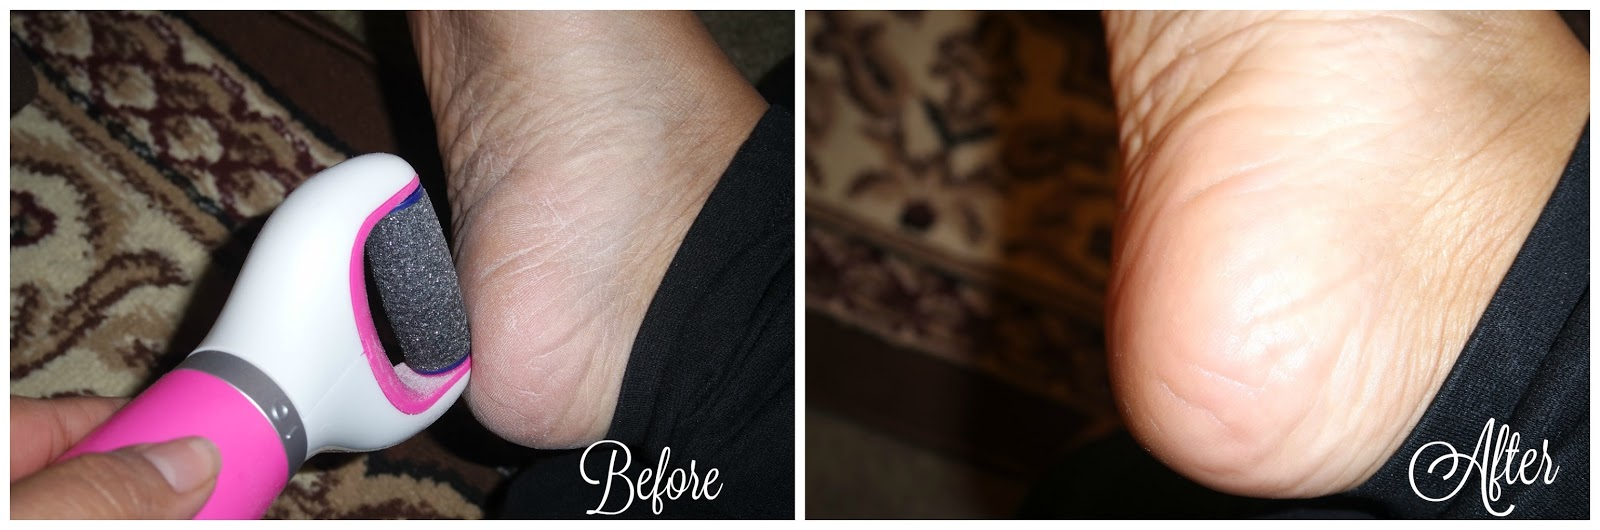 before and after amope pedi perfect